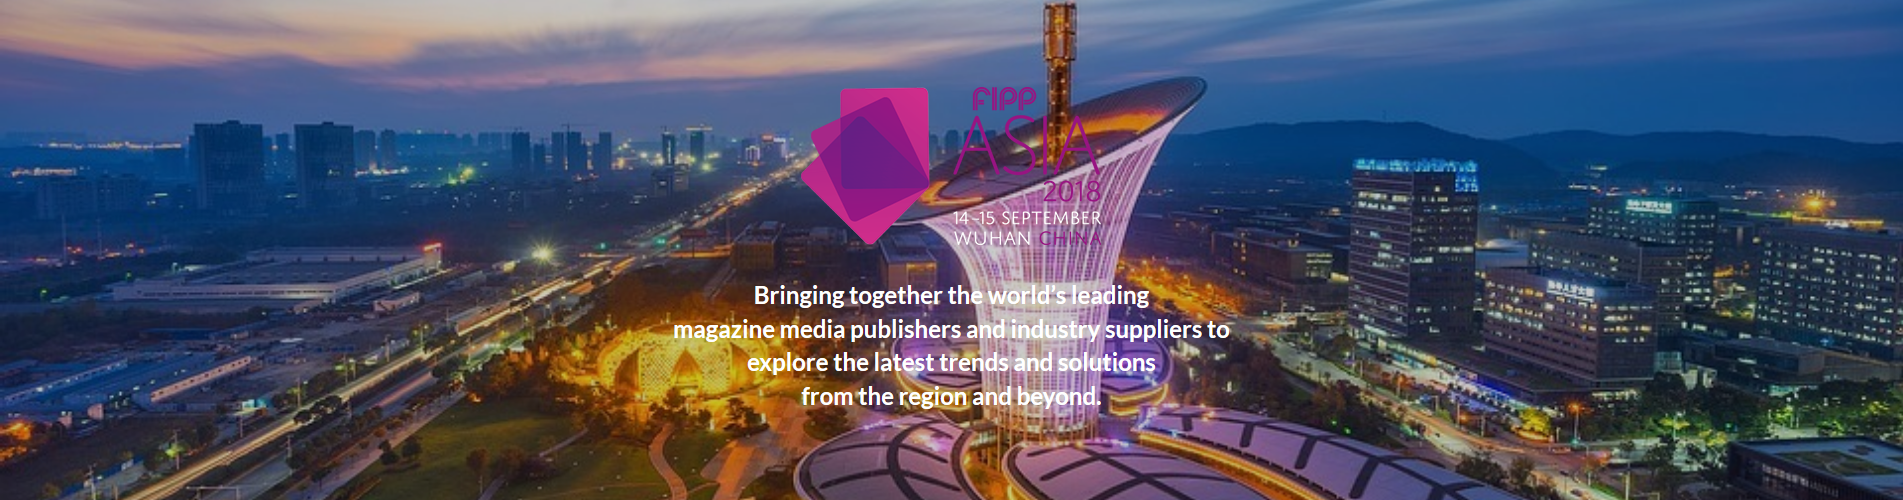 FIPP Asia 2018 - Wuhan, China